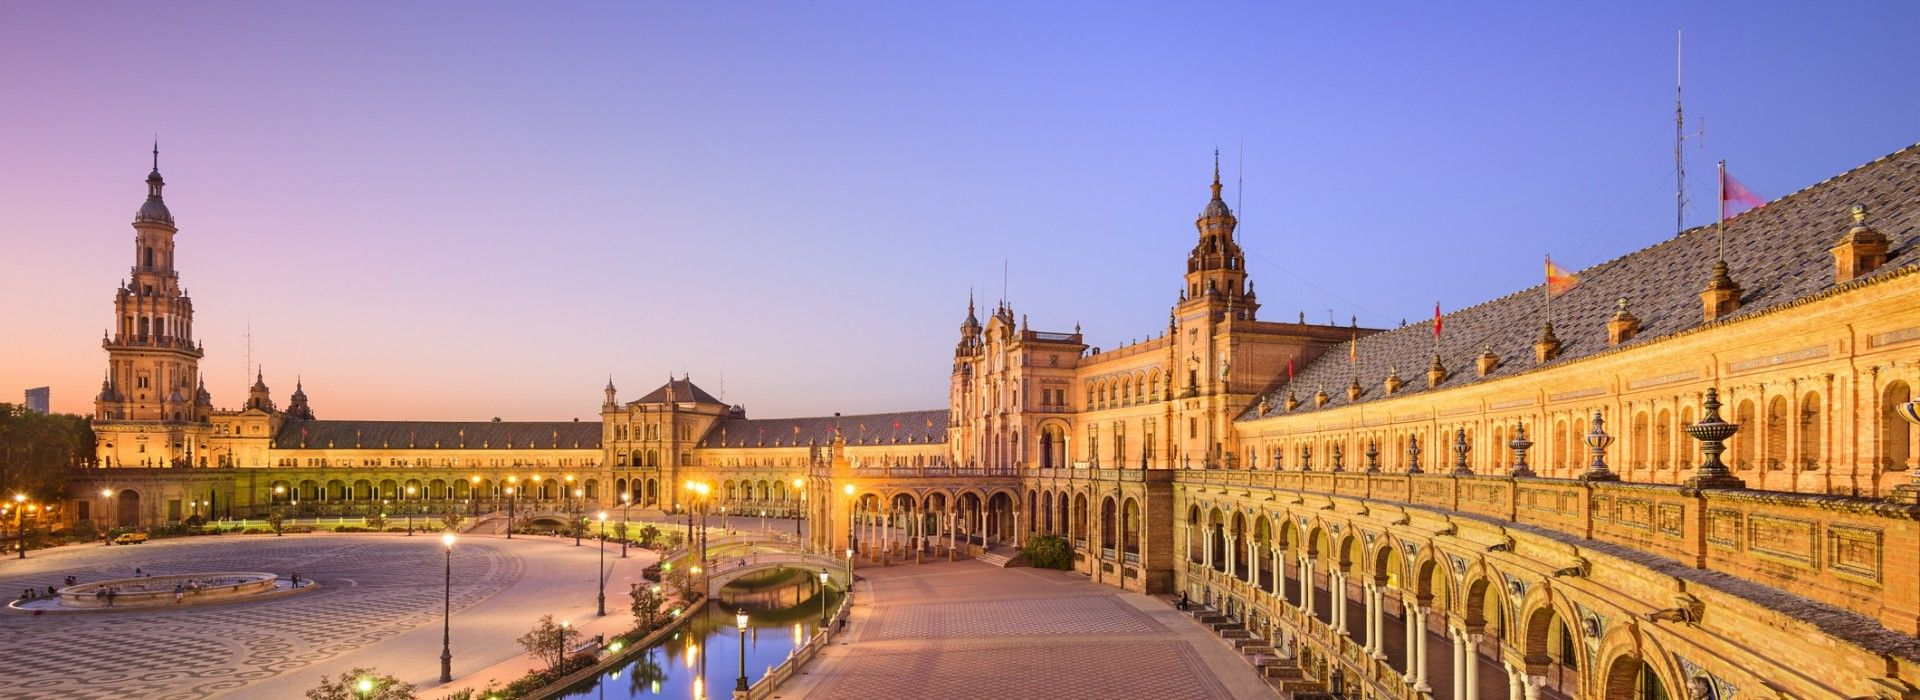 Food, wine, events and nightlife Tours in Spain